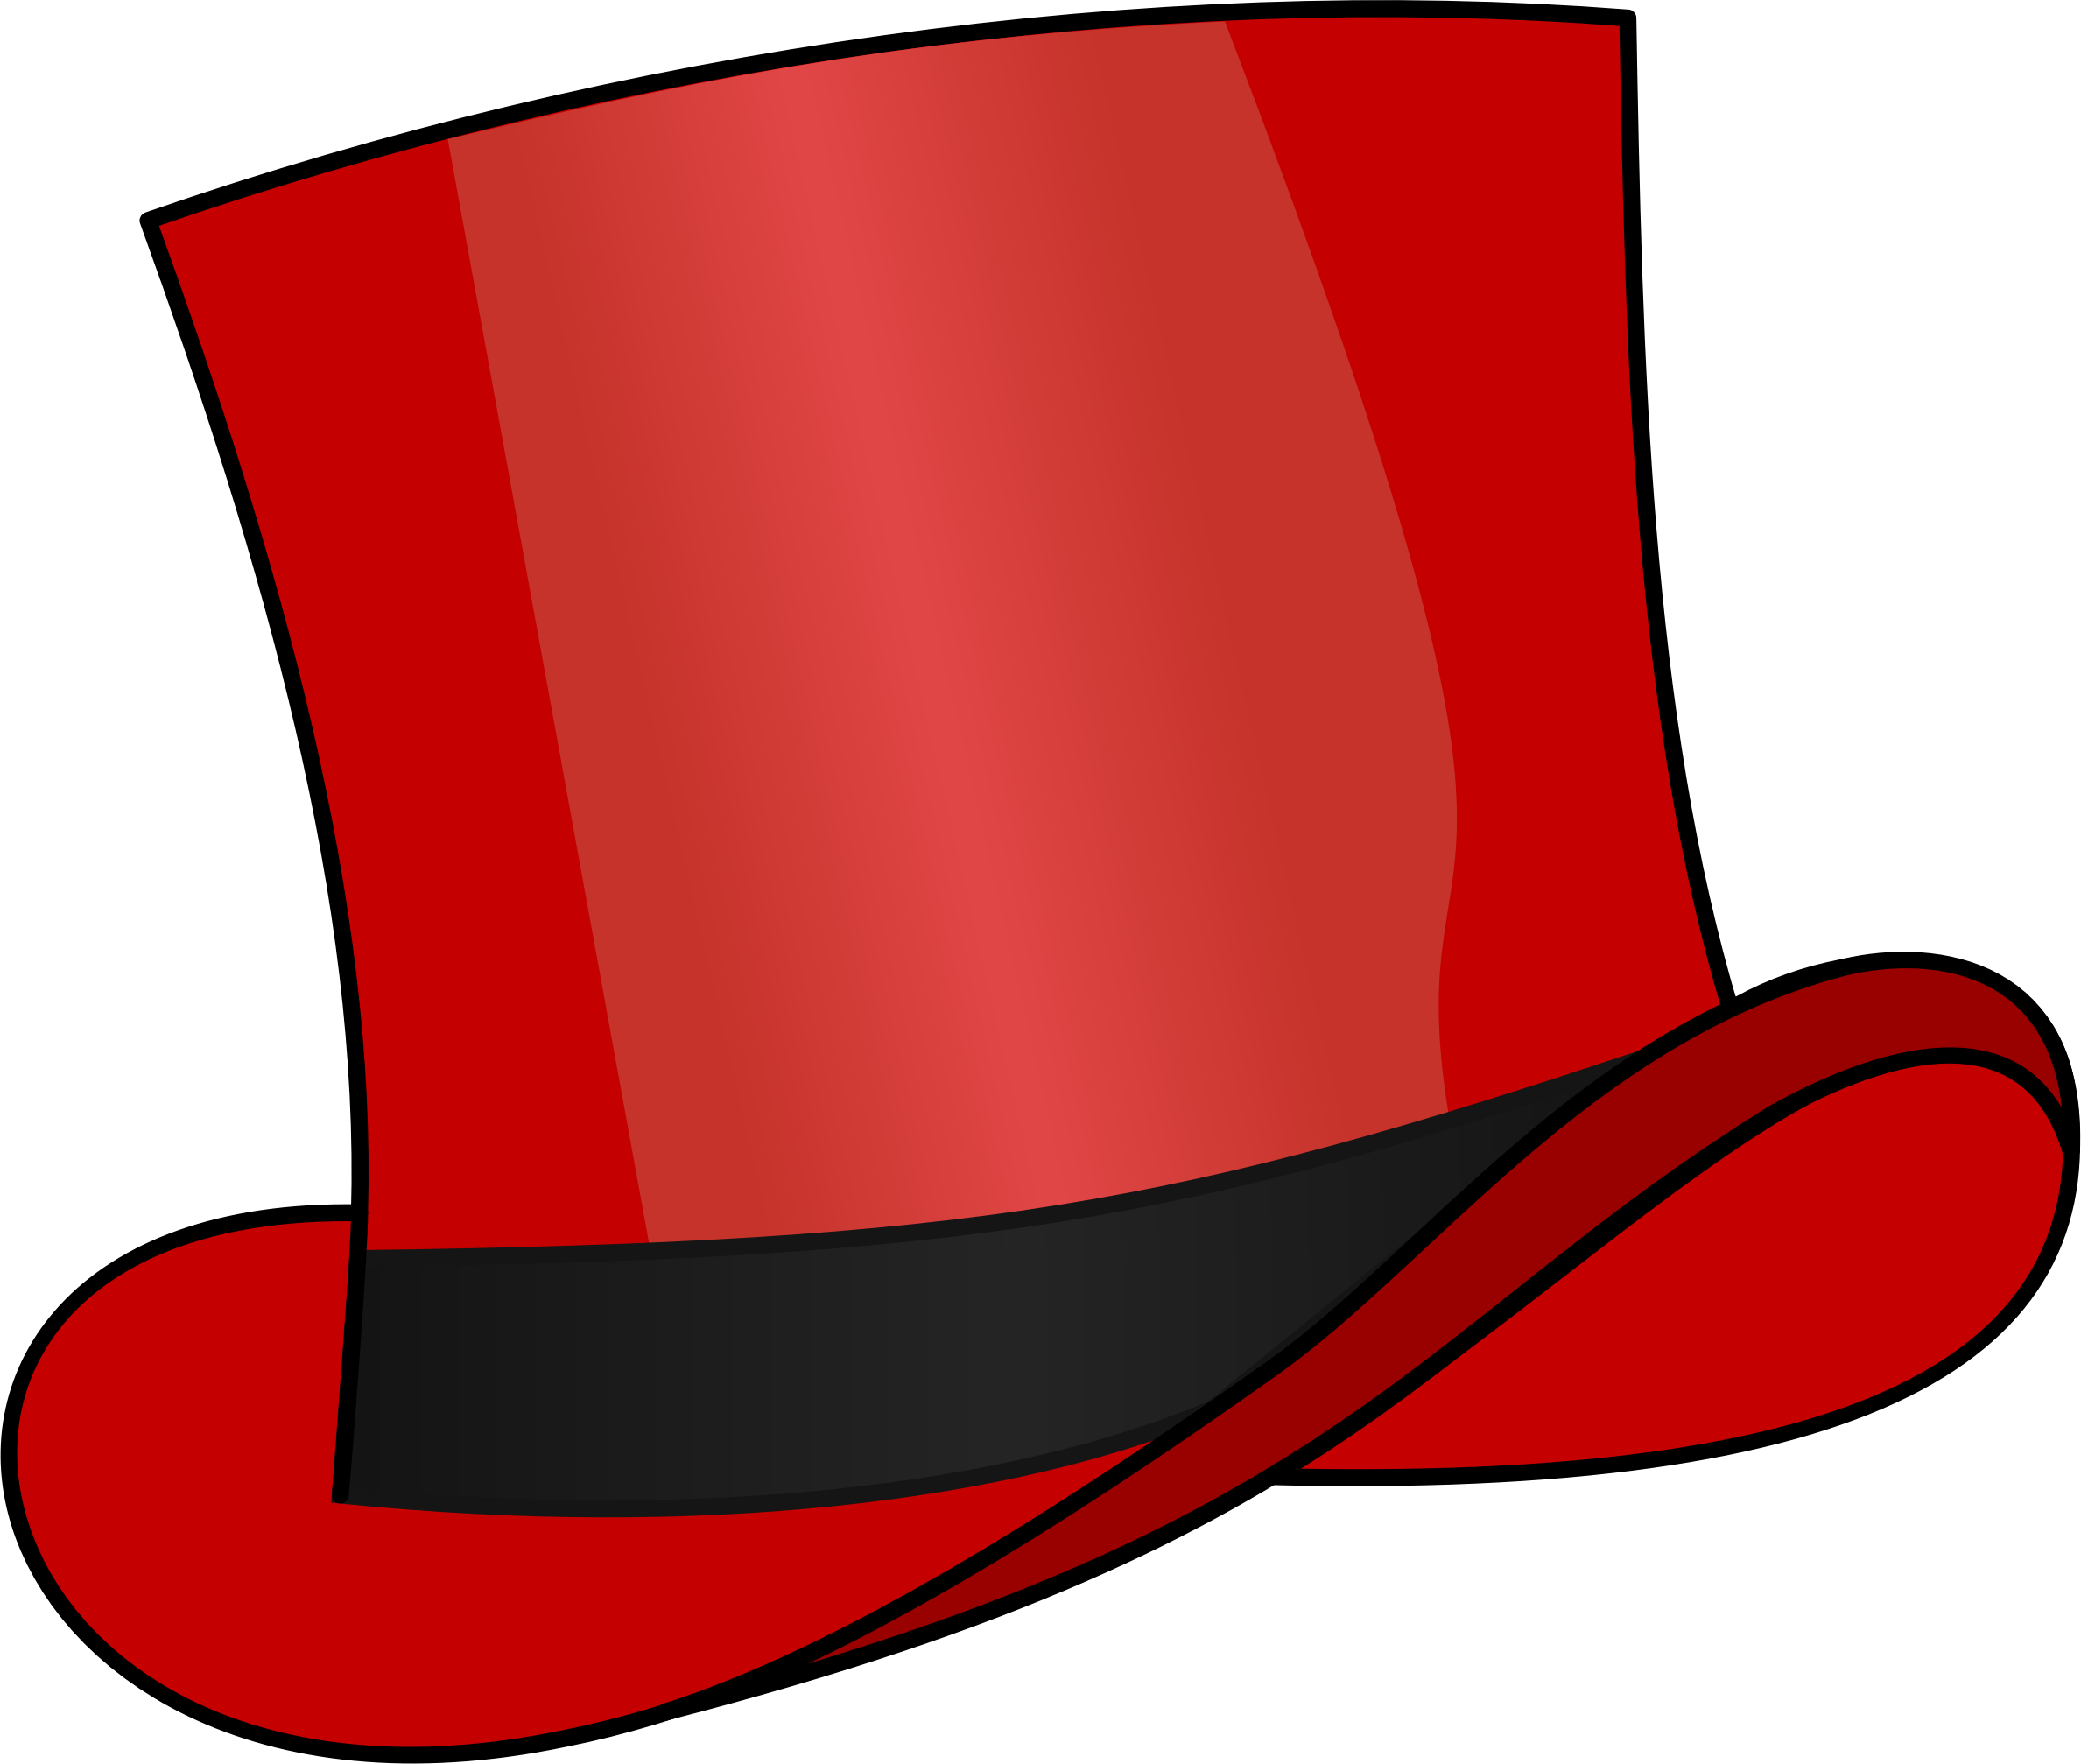 Red top hat by cschreuders